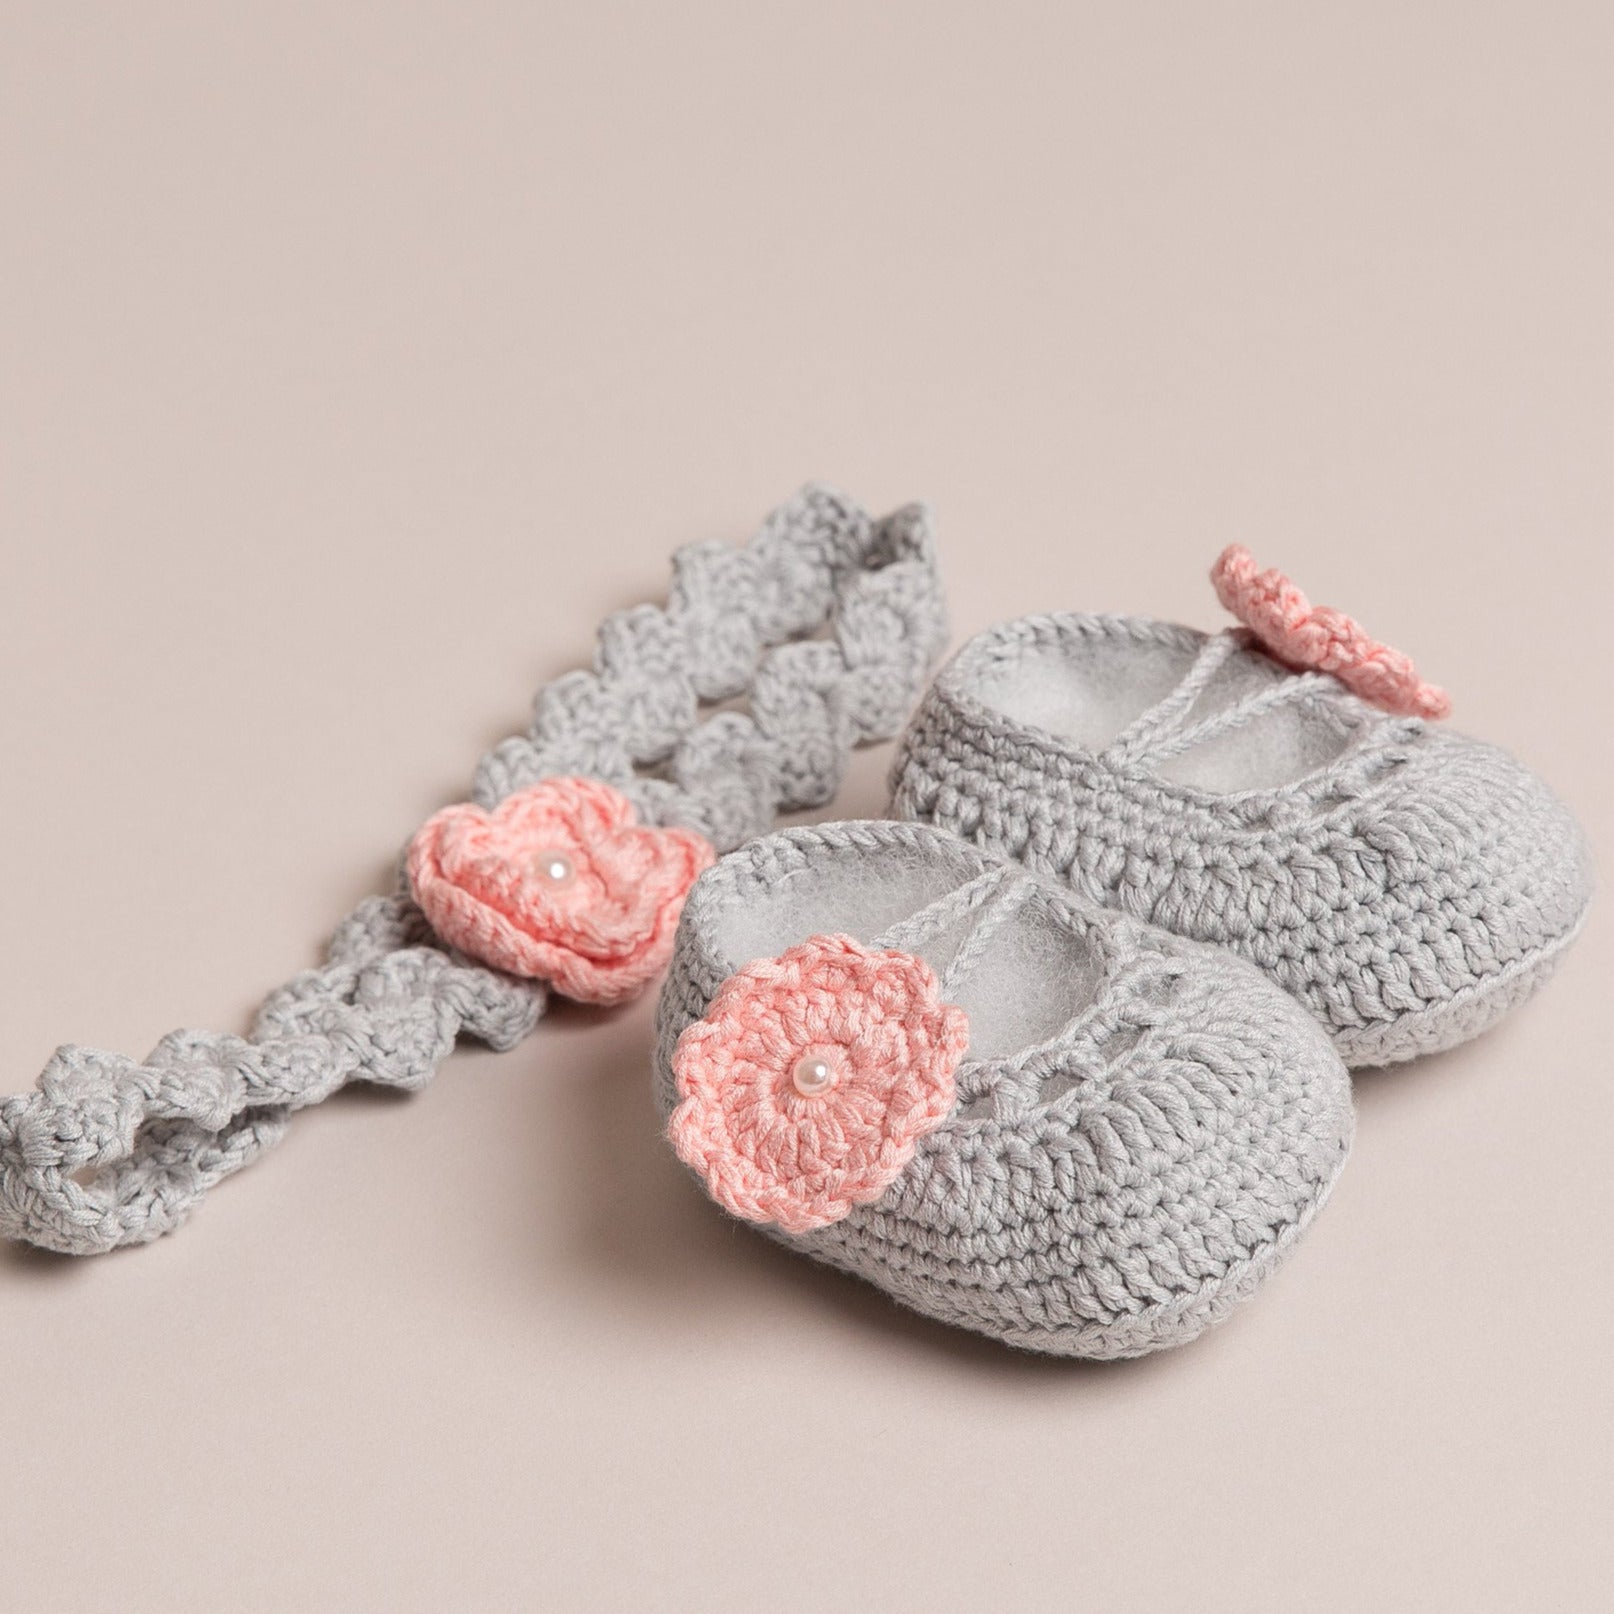 Babys pink flower shoes and headband set attic babys pink flower shoes and headband set mightylinksfo